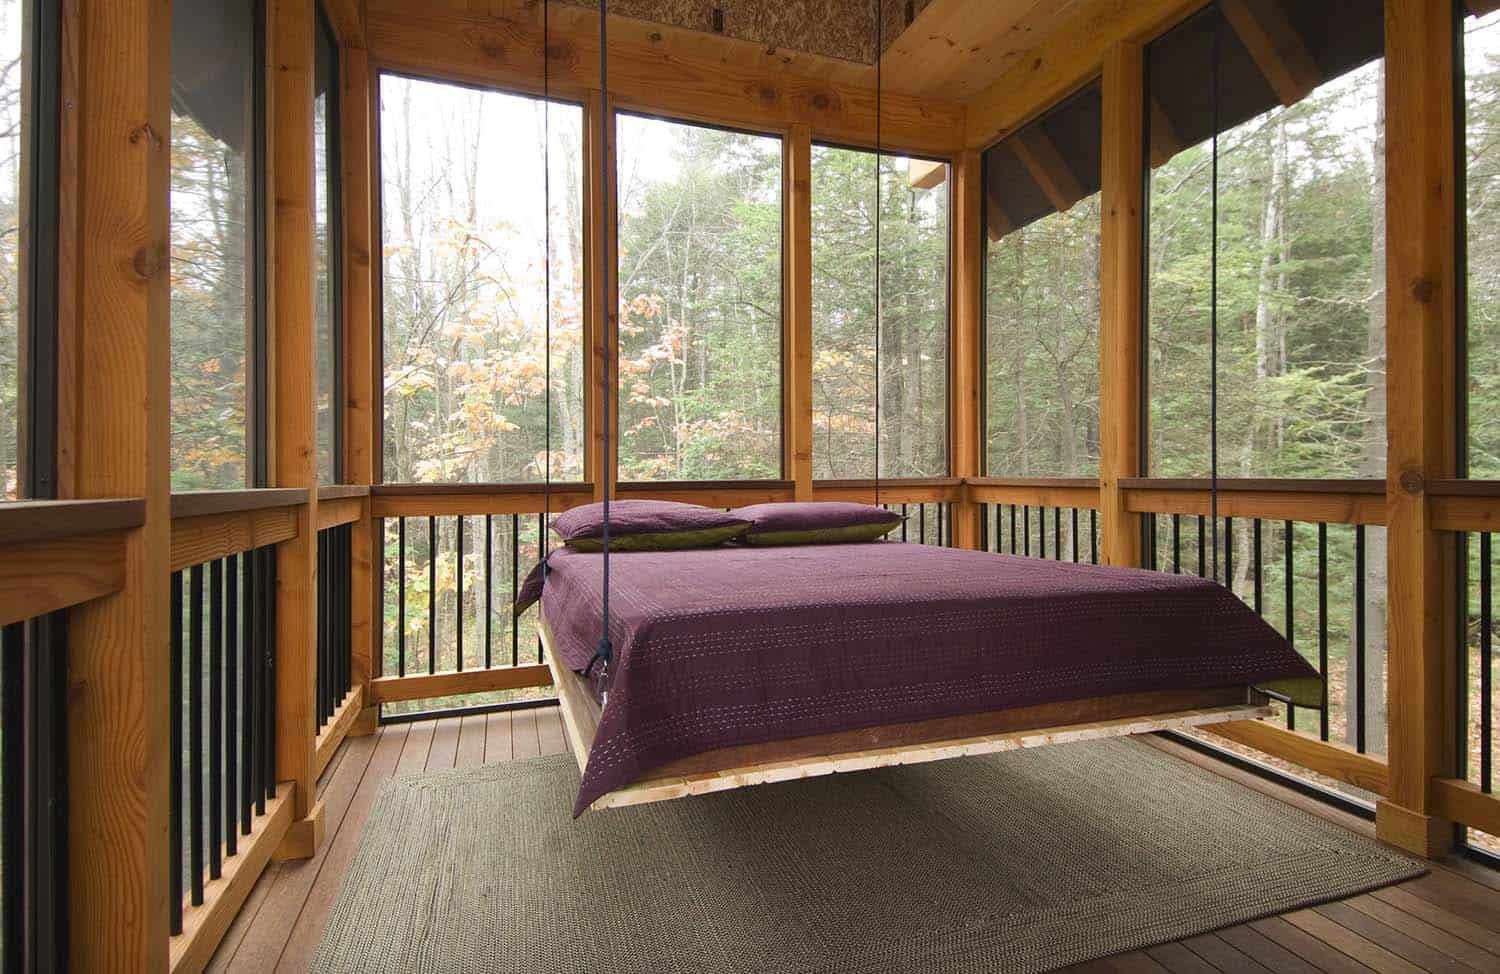 https://cdn.onekindesign.com/wp-content/uploads/2017/05/Screened-Porch-Design-Ideas-16-1-Kindesign.jpg